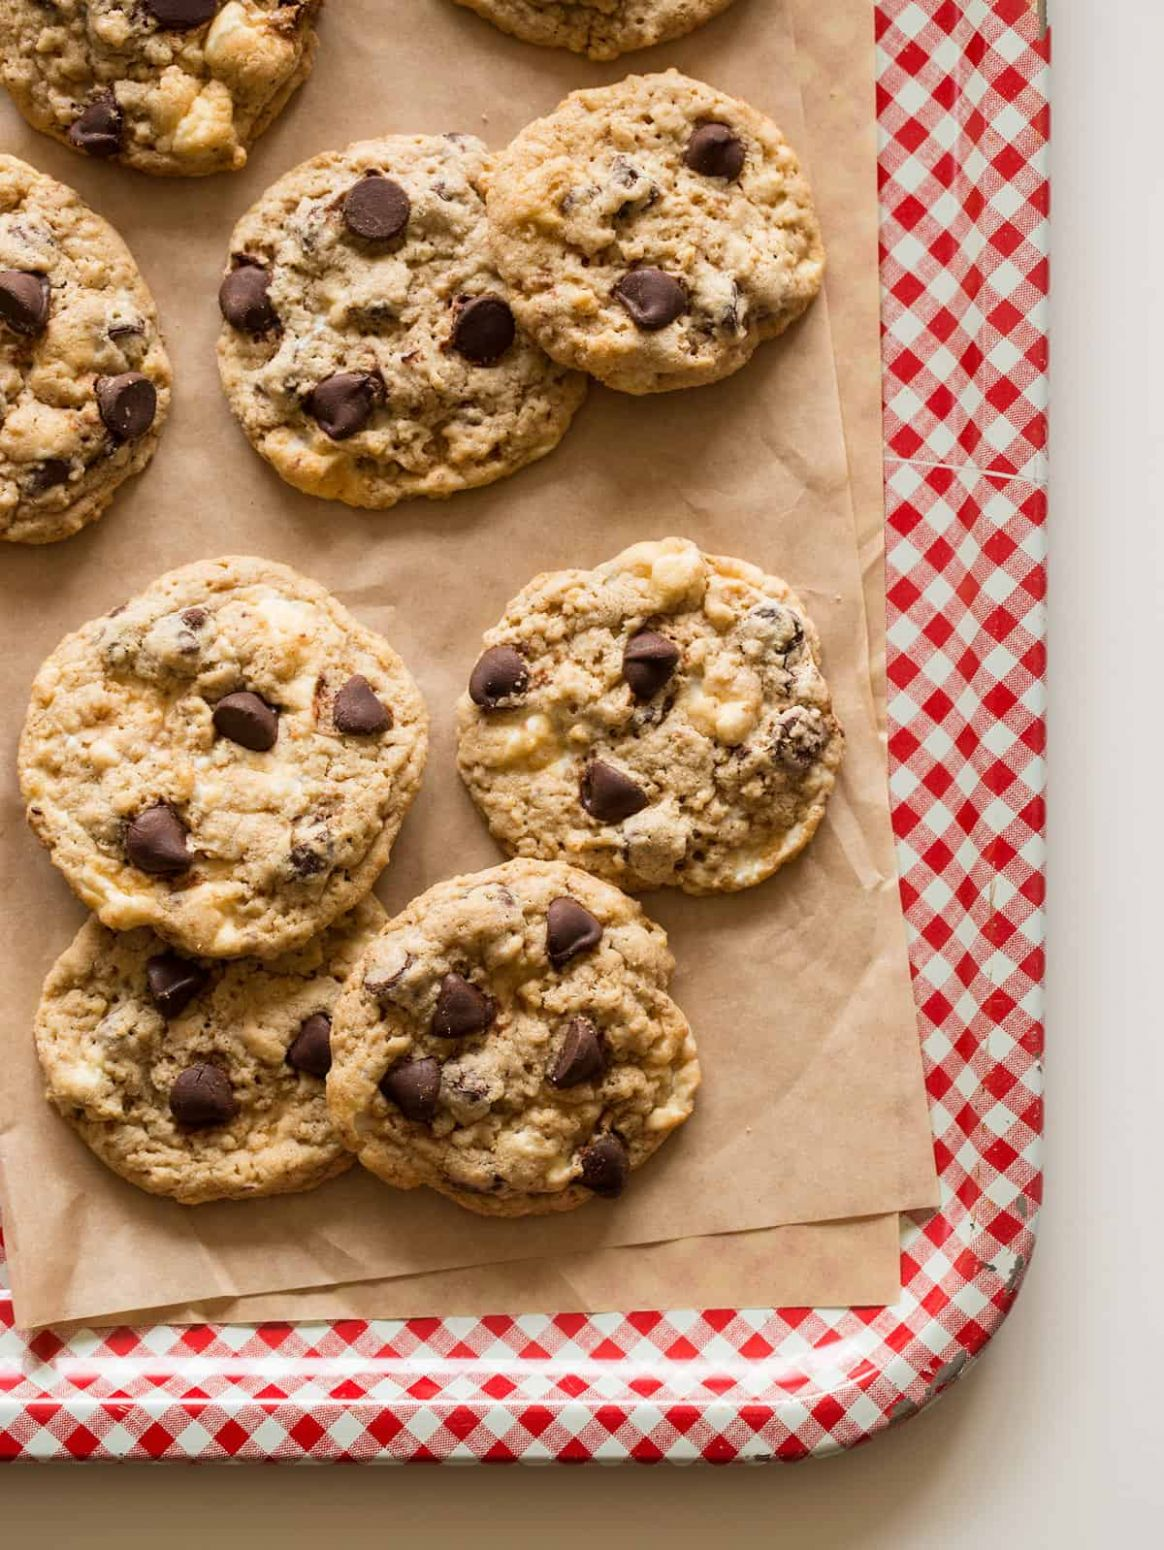 Chocolate Chip Rice Krispies Treat Cookies - Recipes Using Rice Krispies